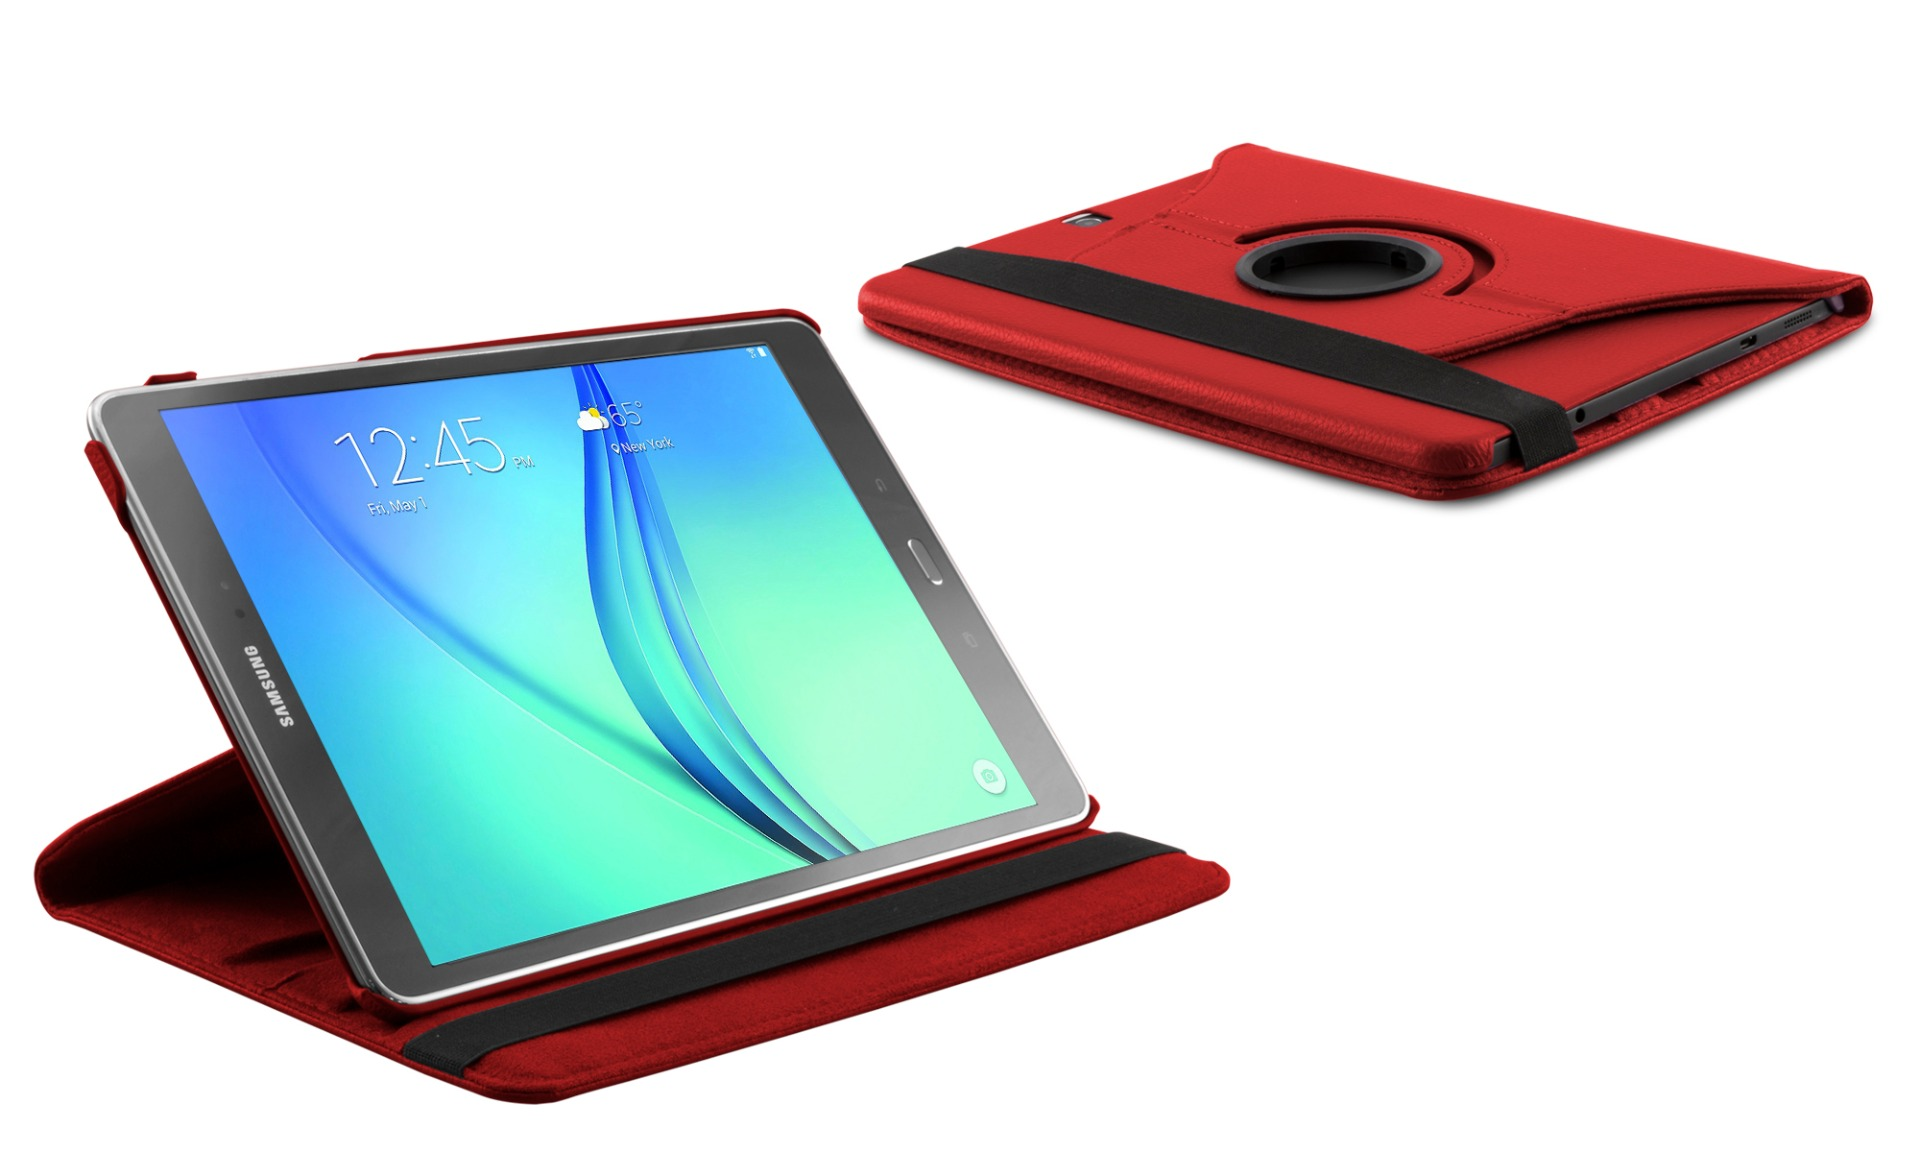 Roterende beschermcase voor Samsung Galaxy Tab A 10.1 rood